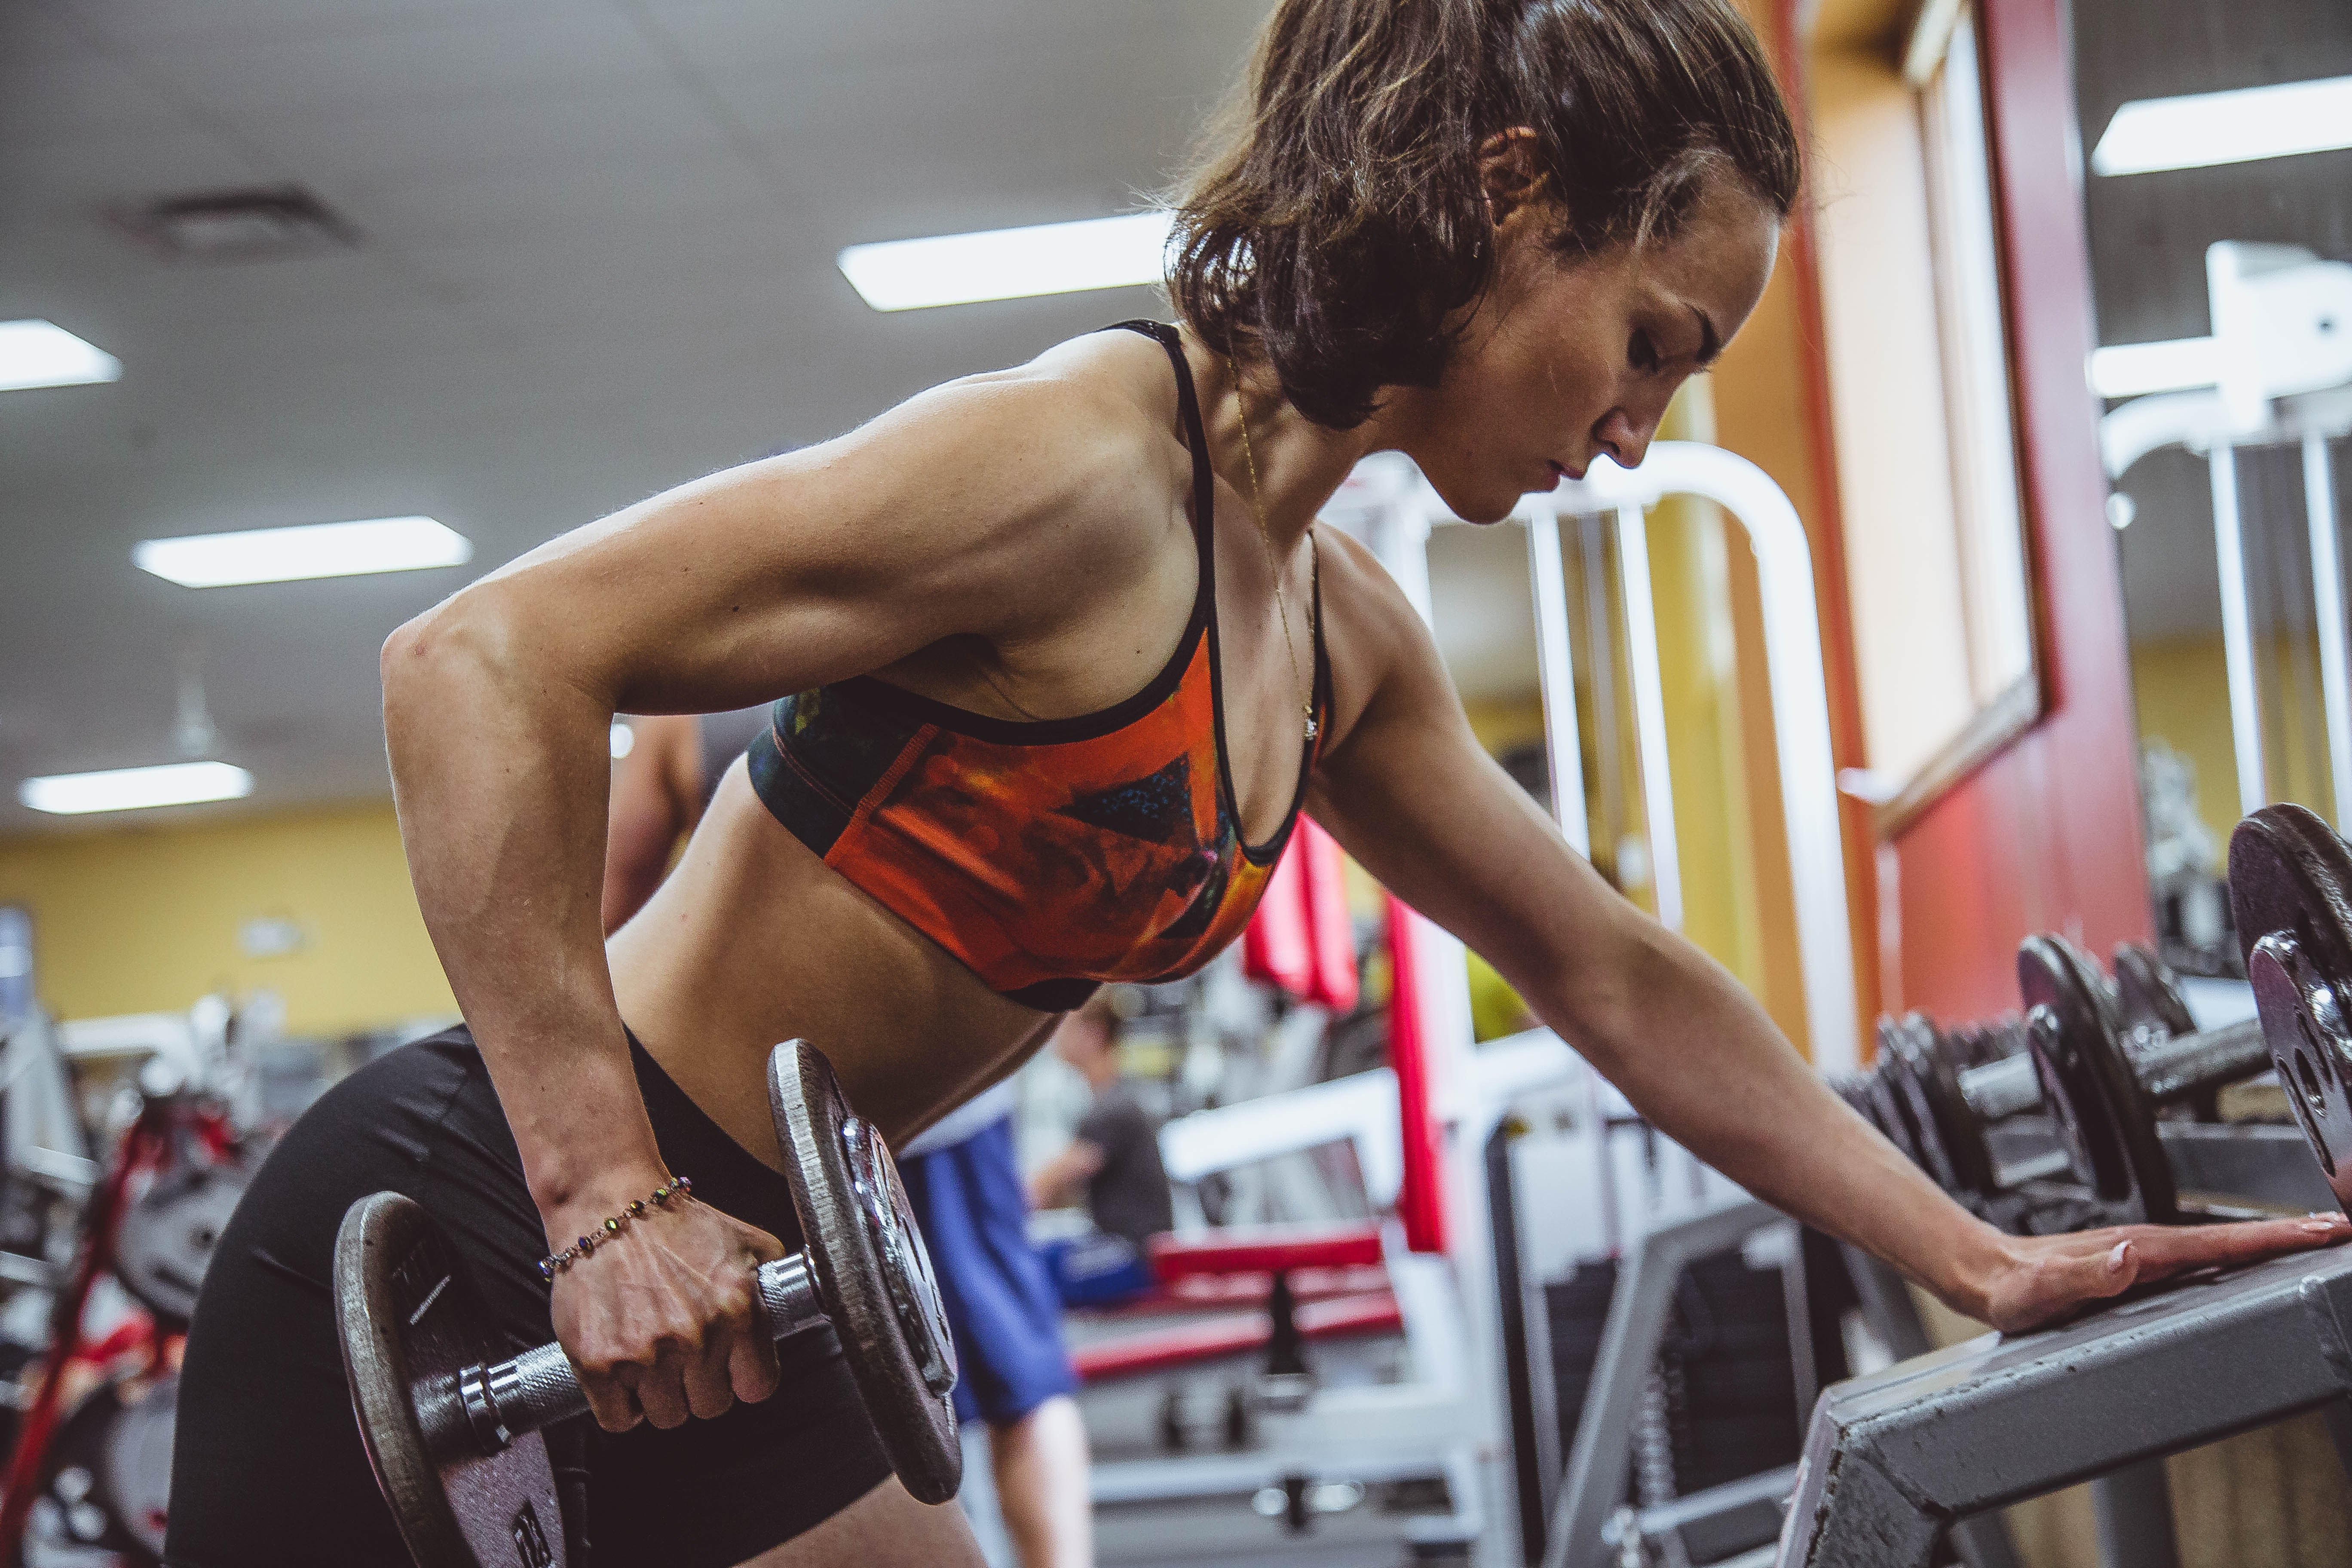 Woman lifting weights in a gym